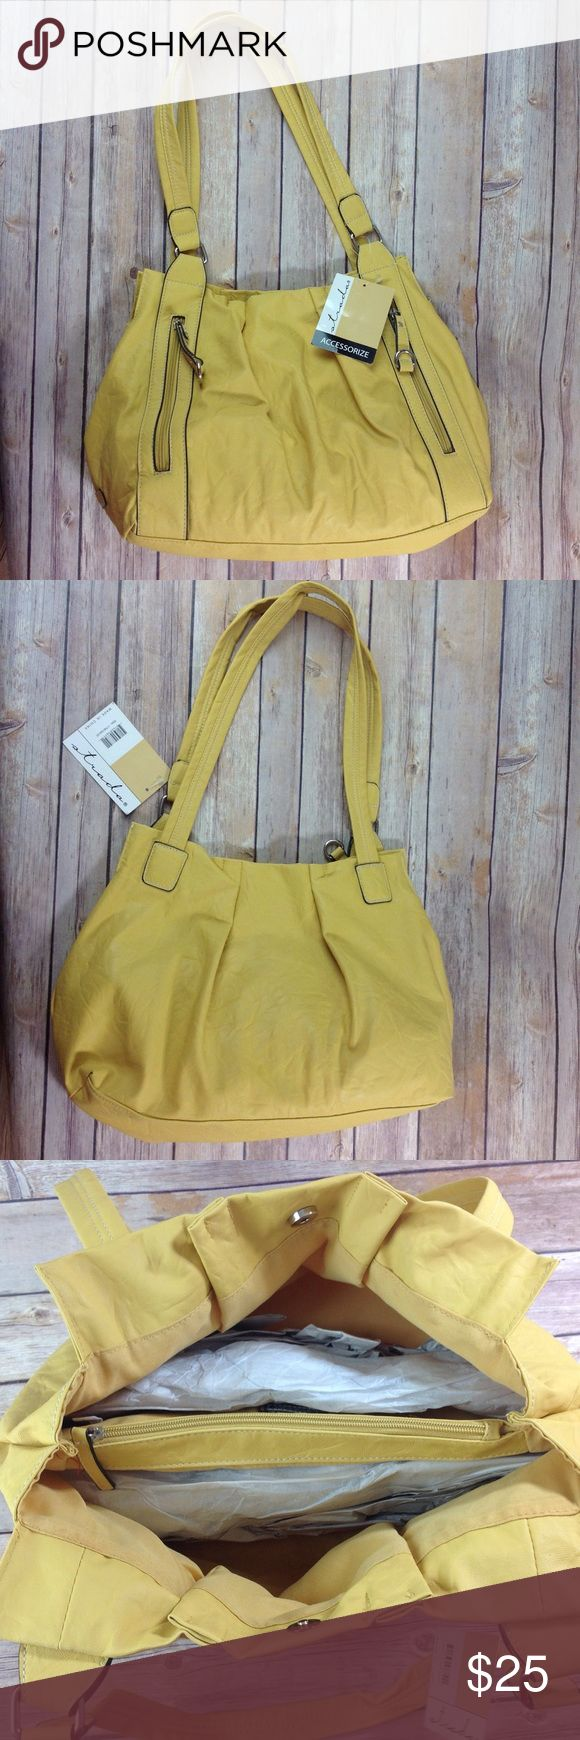 NEW with tags Strada Mustard Yellow Hobo Handbag New purse with organizer pockets.  Has 2 front pockets, 1 center/divider packet, and 1 inner pocket.  Faux leather.  Measures 16 1/2 in wide, 10 1/2 in high, and 5 in deep. Strada Bags Hobos